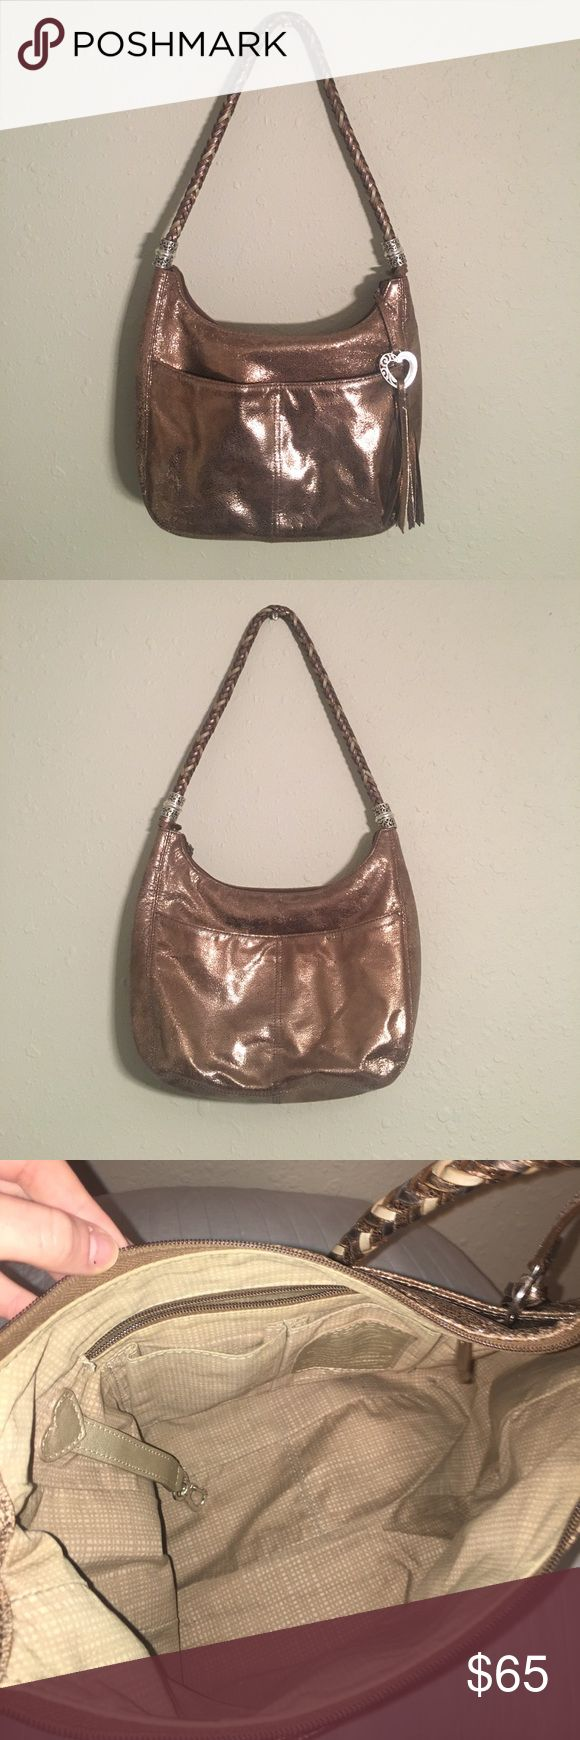 Brighton copper Metallic Shoulder Bag Purse Great used condition! Authentic Brighton bag. Color is almost gold/copper Metallic color. Has a very glittery look! Comment for any additional questions or measurements :) Brighton Bags Shoulder Bags